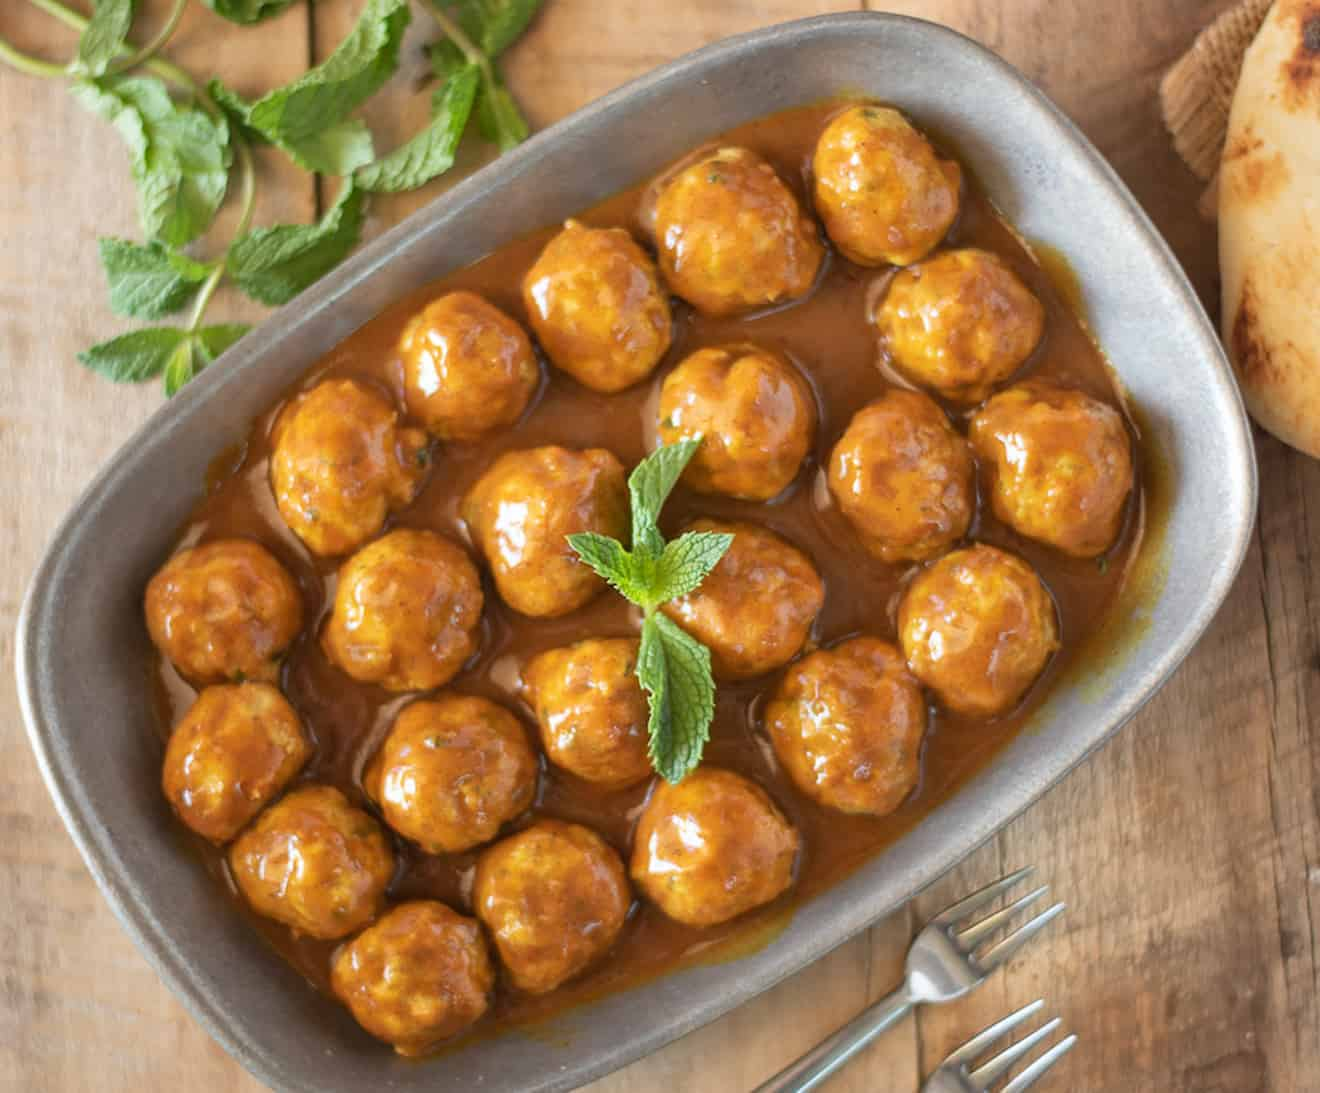 A platter of mini chicken meatballs in a curry sauce